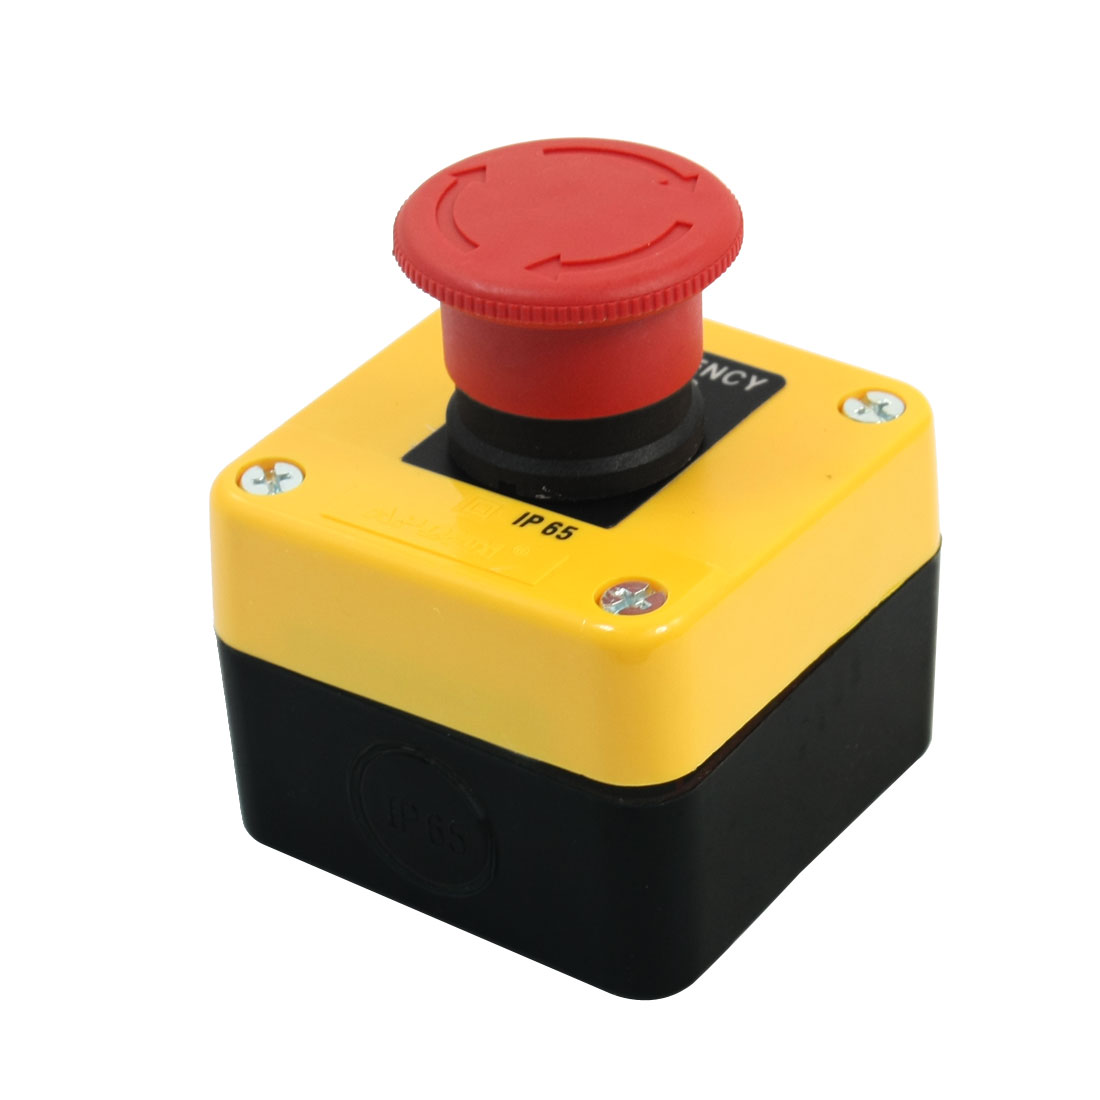 Ui 660V Ith 10A SPST 2 Screw Terminal Push Locking Rotary Reset Red Mushroom Head Elevator Emergency Stop Pushbutton Switch